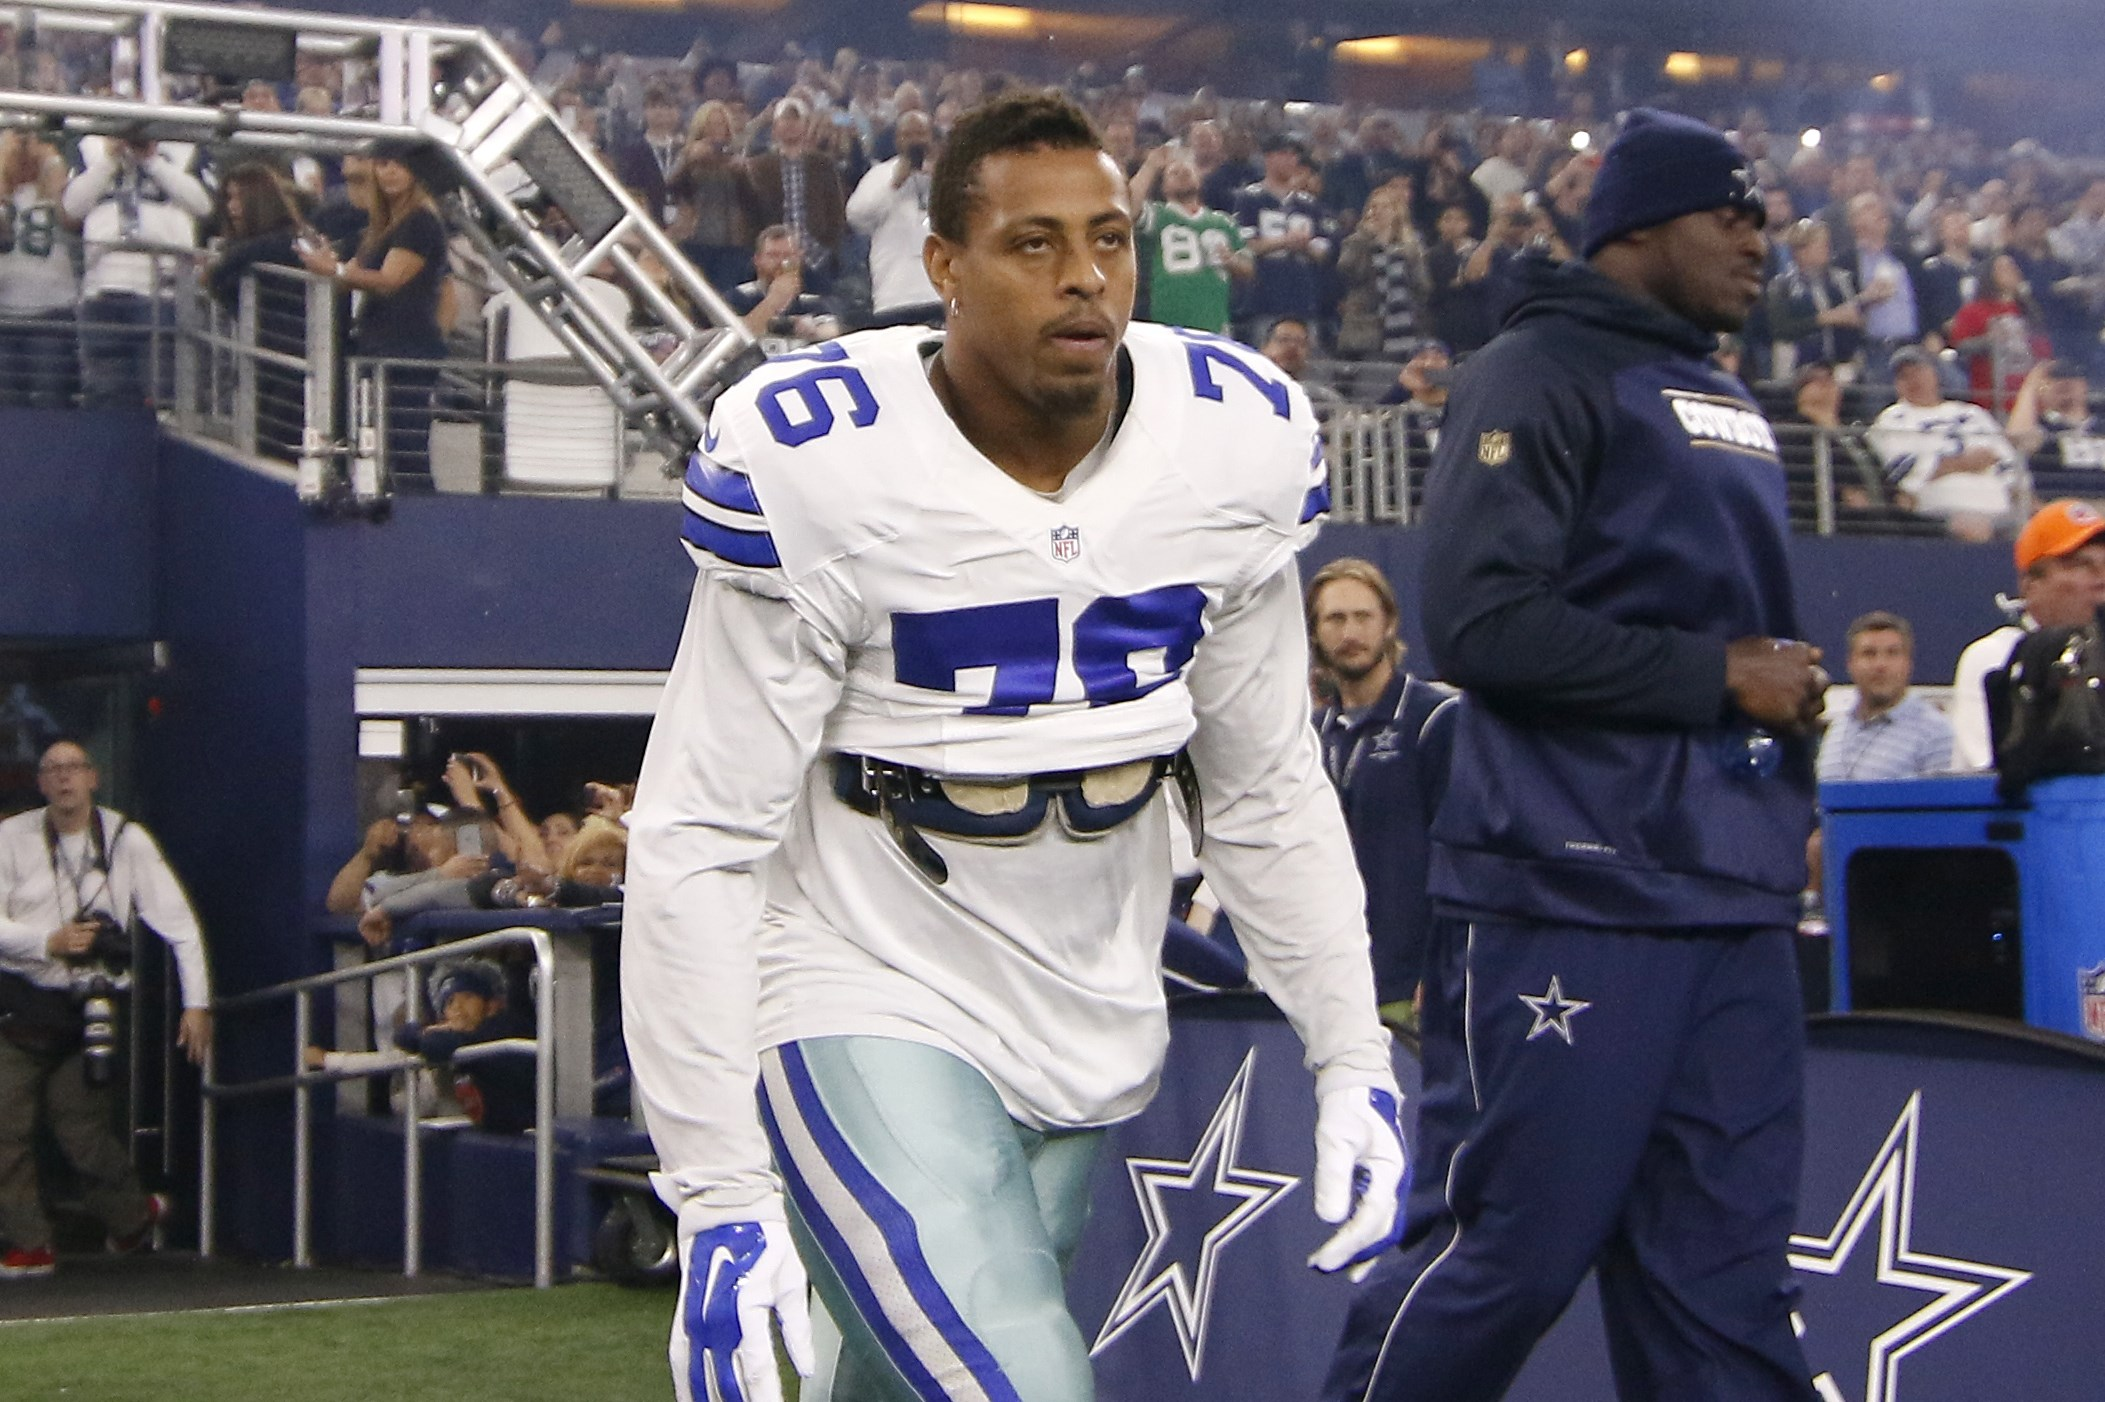 Dallas Cowboys defensive end Greg Hardy jots out onto the field with the team for an NFL football game against the New York Jets on Saturday, Dec. 19, 2015, in Arlington, Texas. (AP Photo/Roger Steinman)